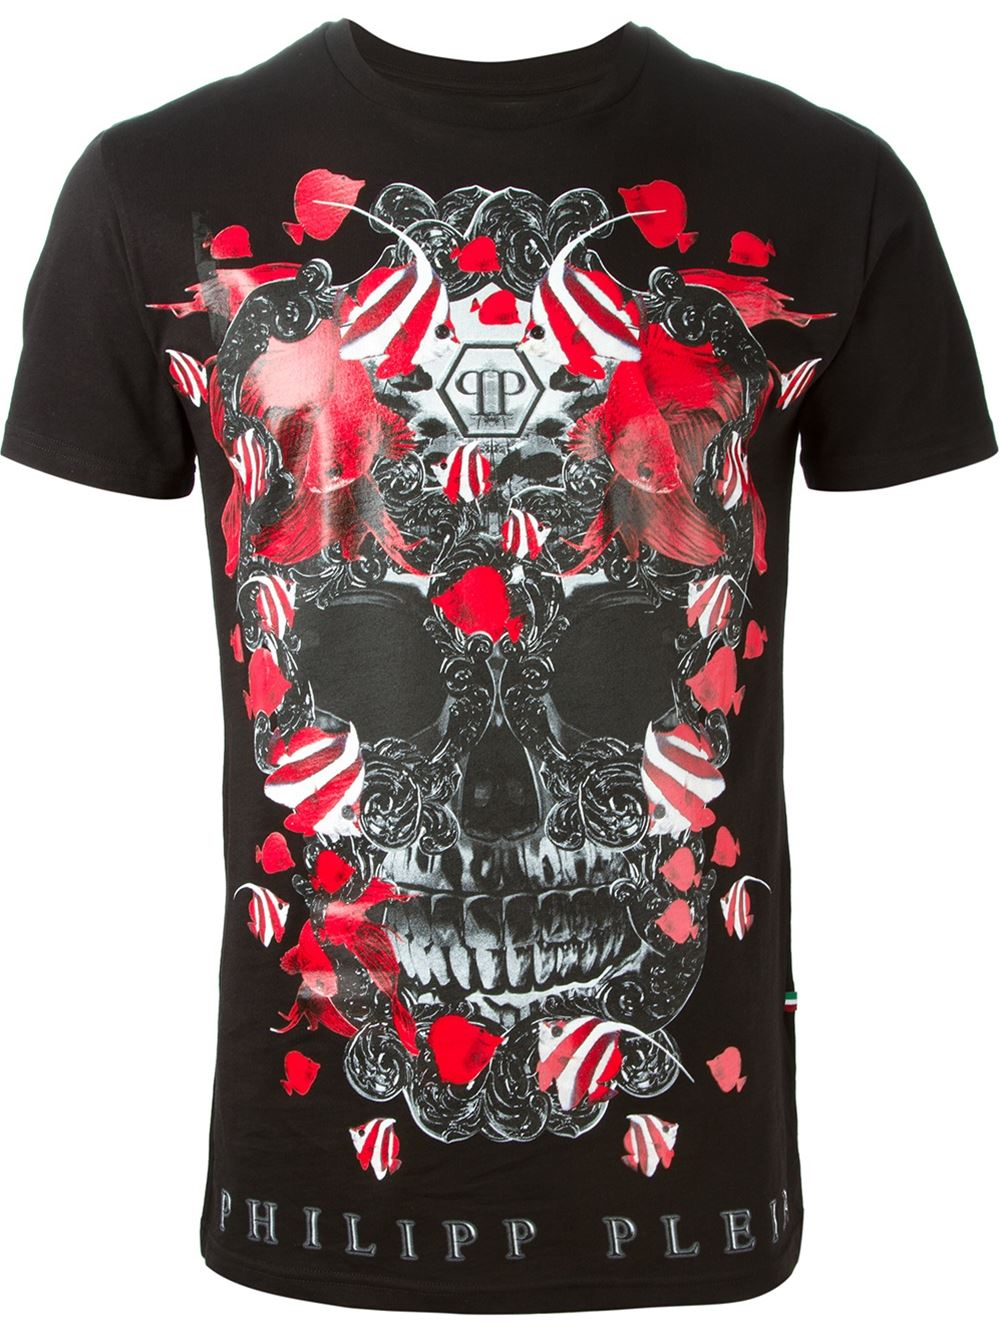 philipp plein clown fish cotton t shirt in black for men lyst. Black Bedroom Furniture Sets. Home Design Ideas